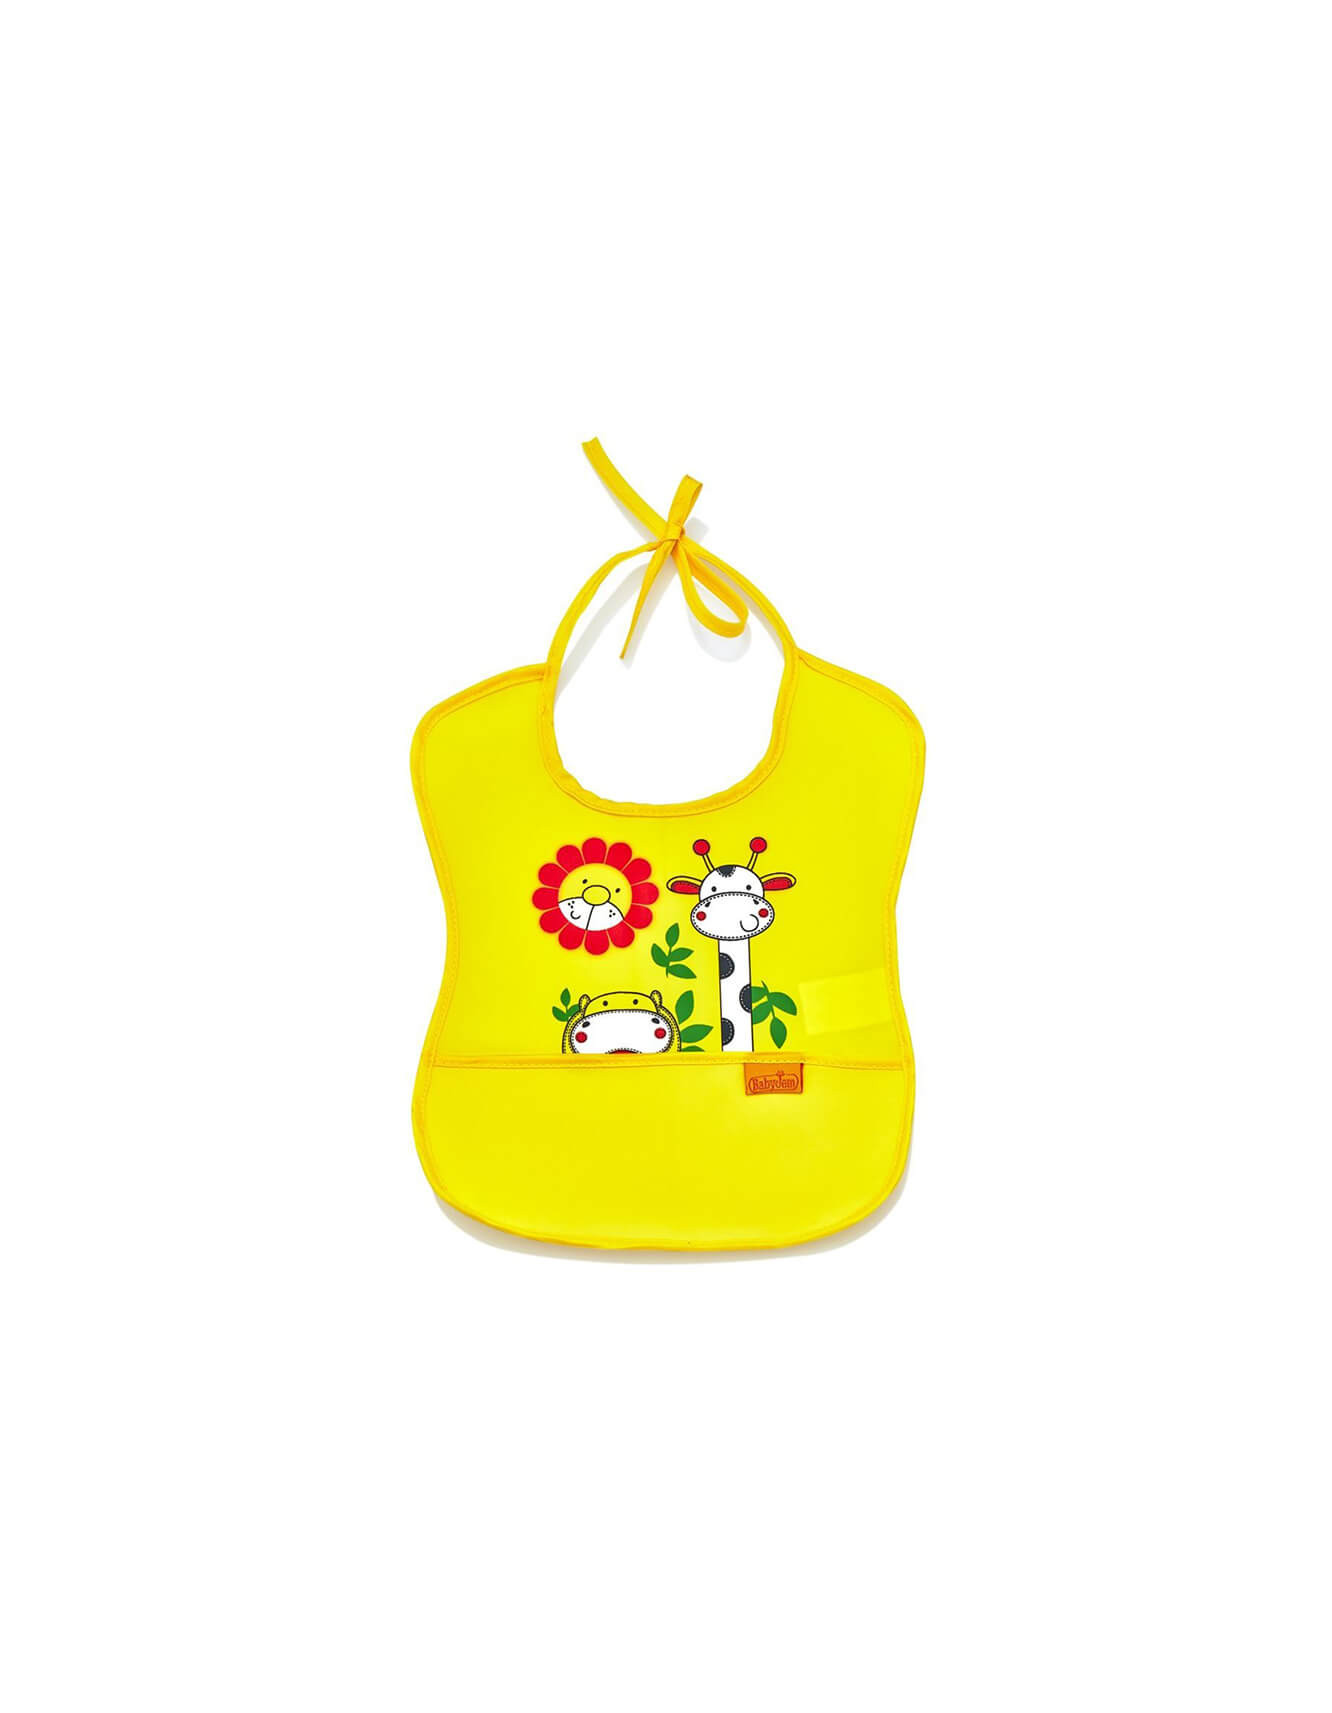 Baby Stroller Price In Pakistan Baby Bib Yellow Small Poly Bj 030 Online In Pakistan